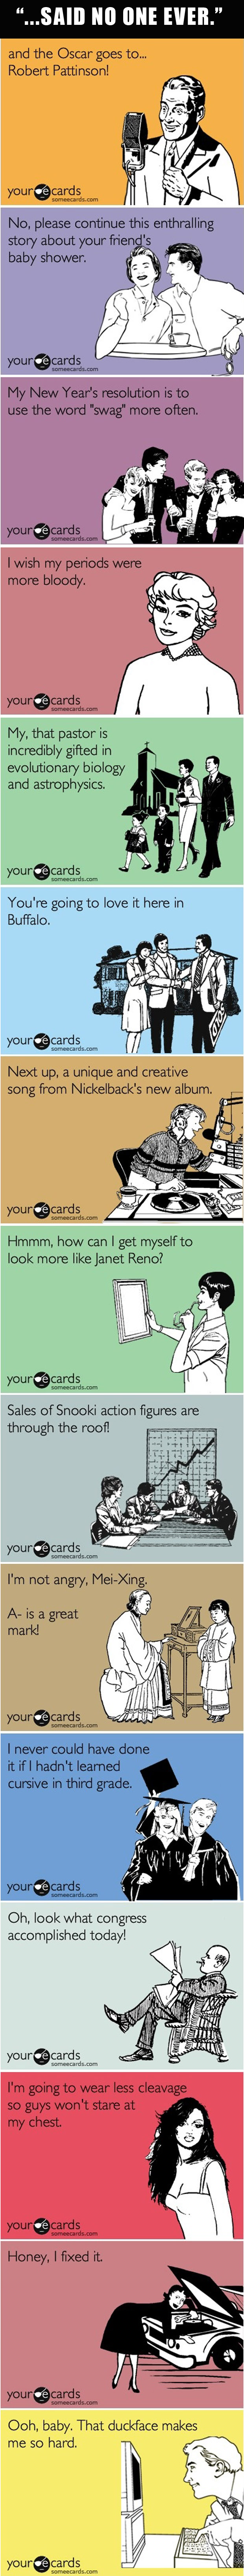 things no one would say ever, funny someecards